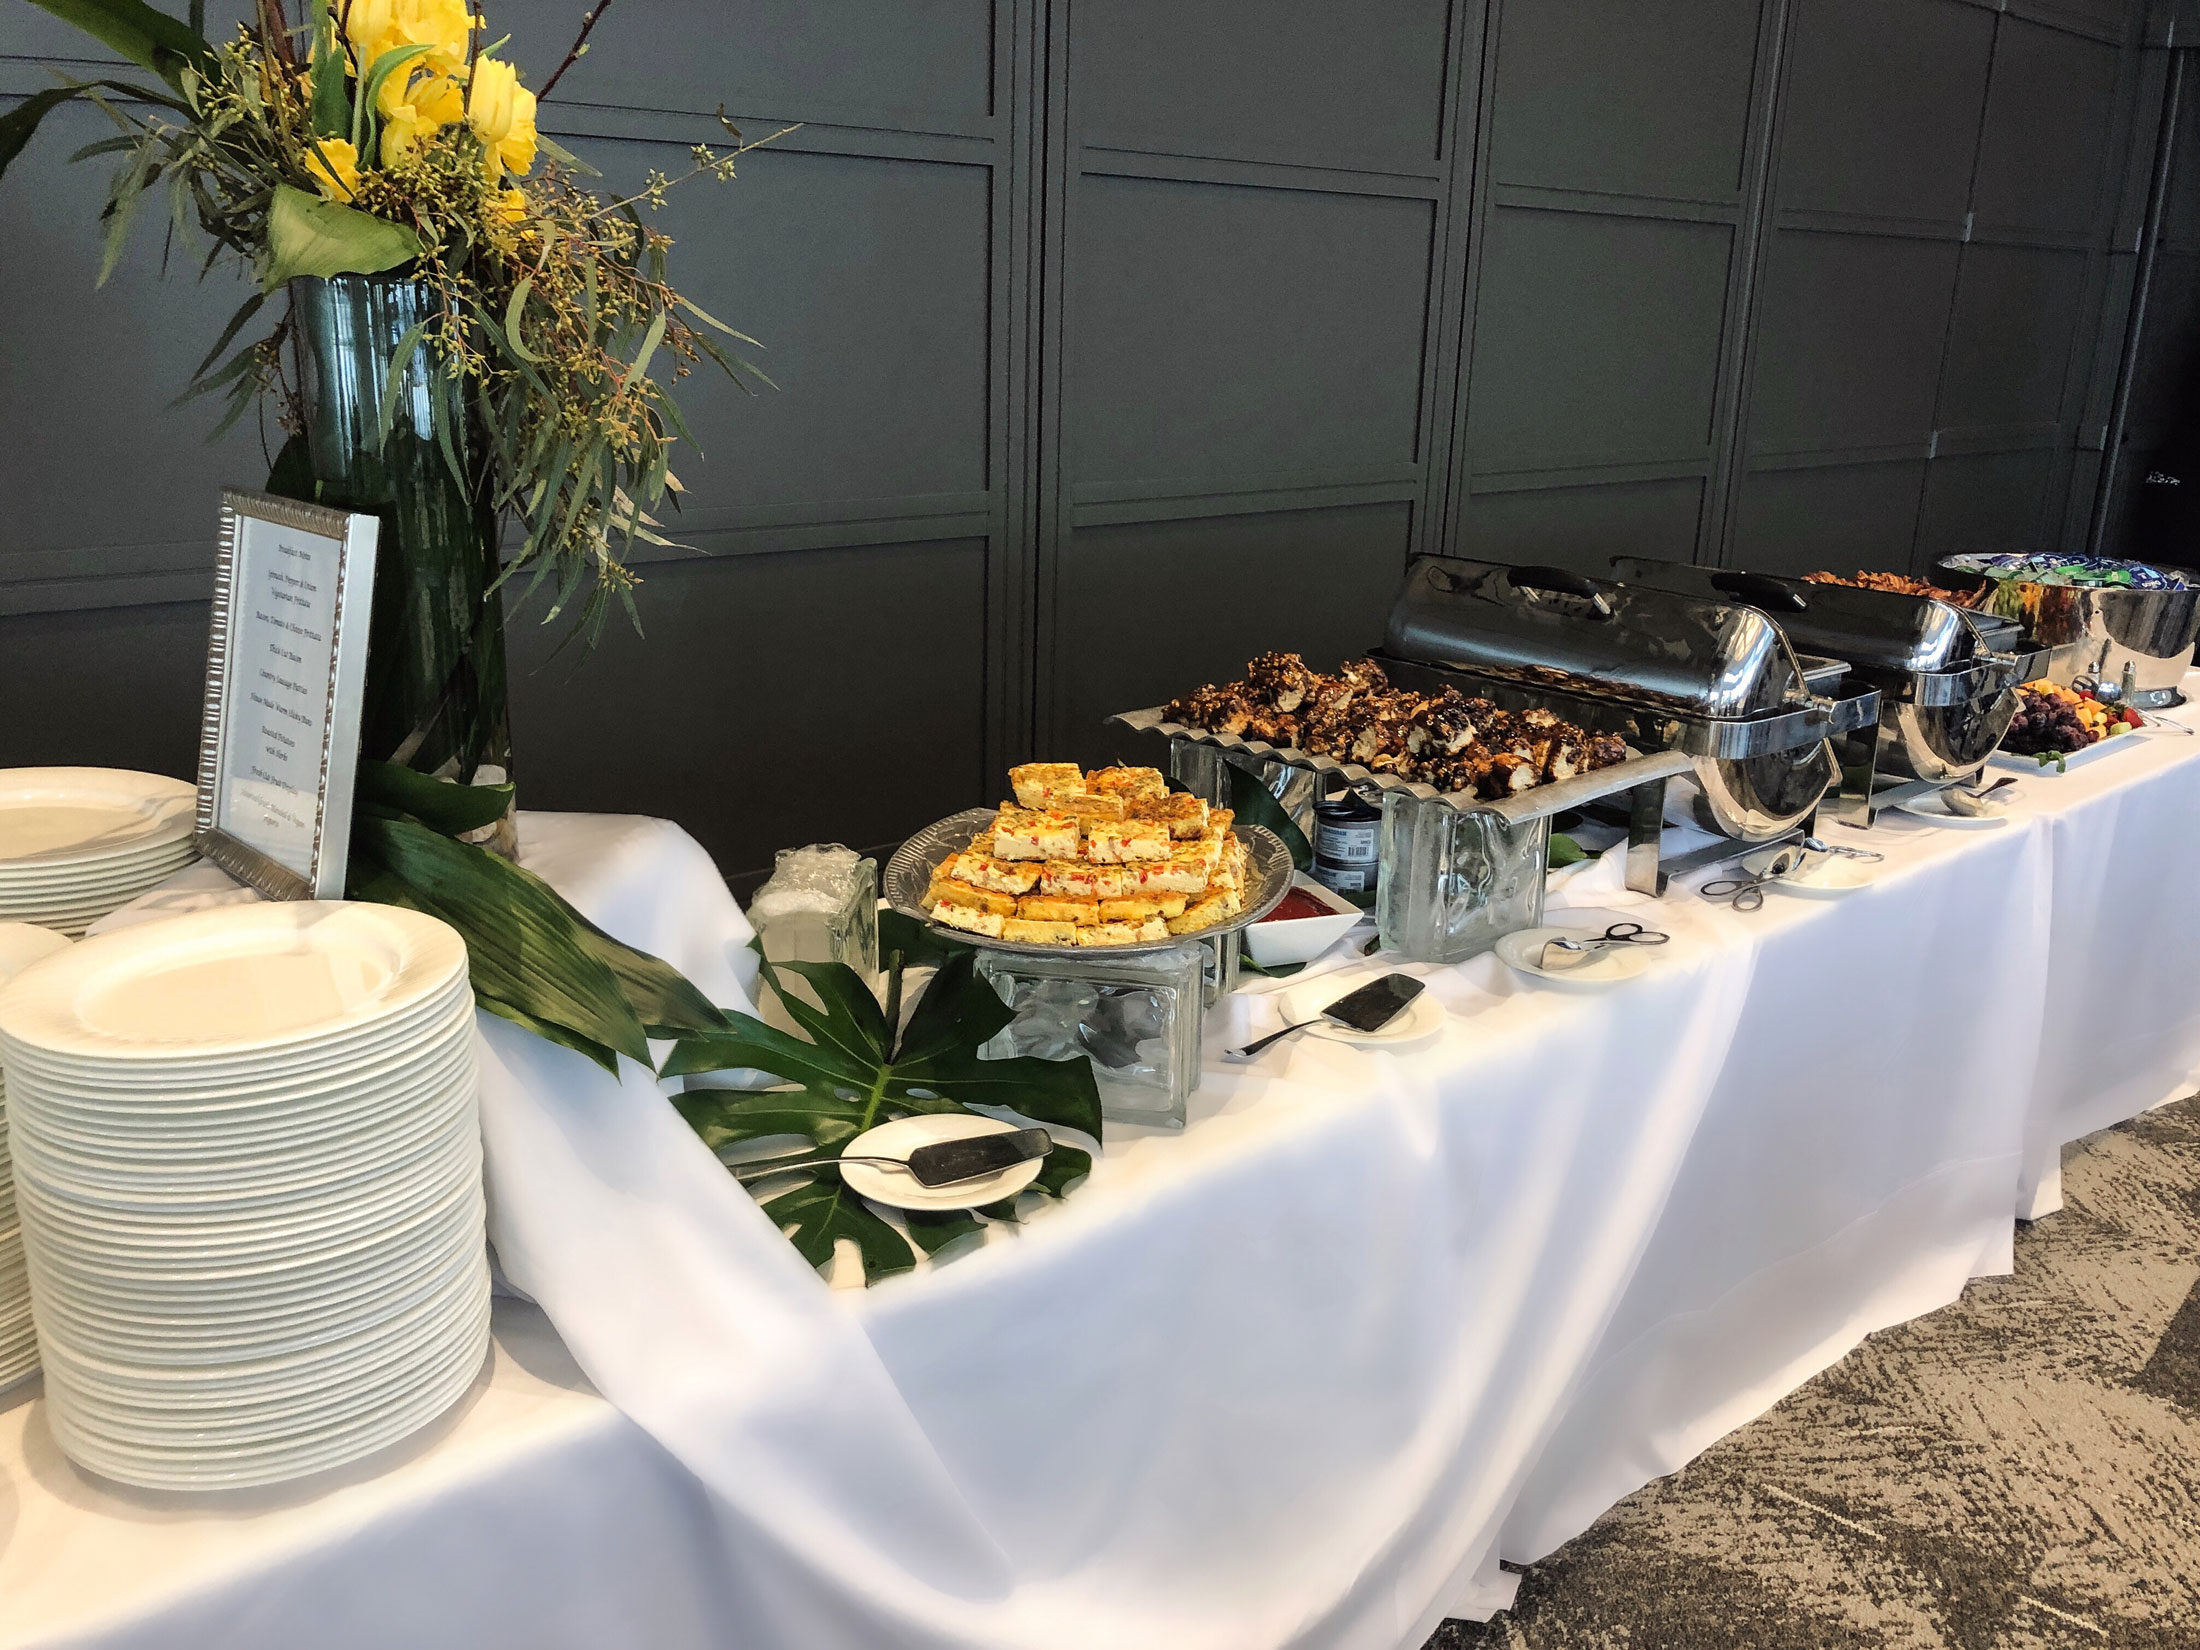 Catering Options - Conference and Event Space reimagined means that we have also taken our catering options to the next level. Now you have the ability to choose! Offering a list of premier caterers allows our clients to choose the best fit for their event style and budget.